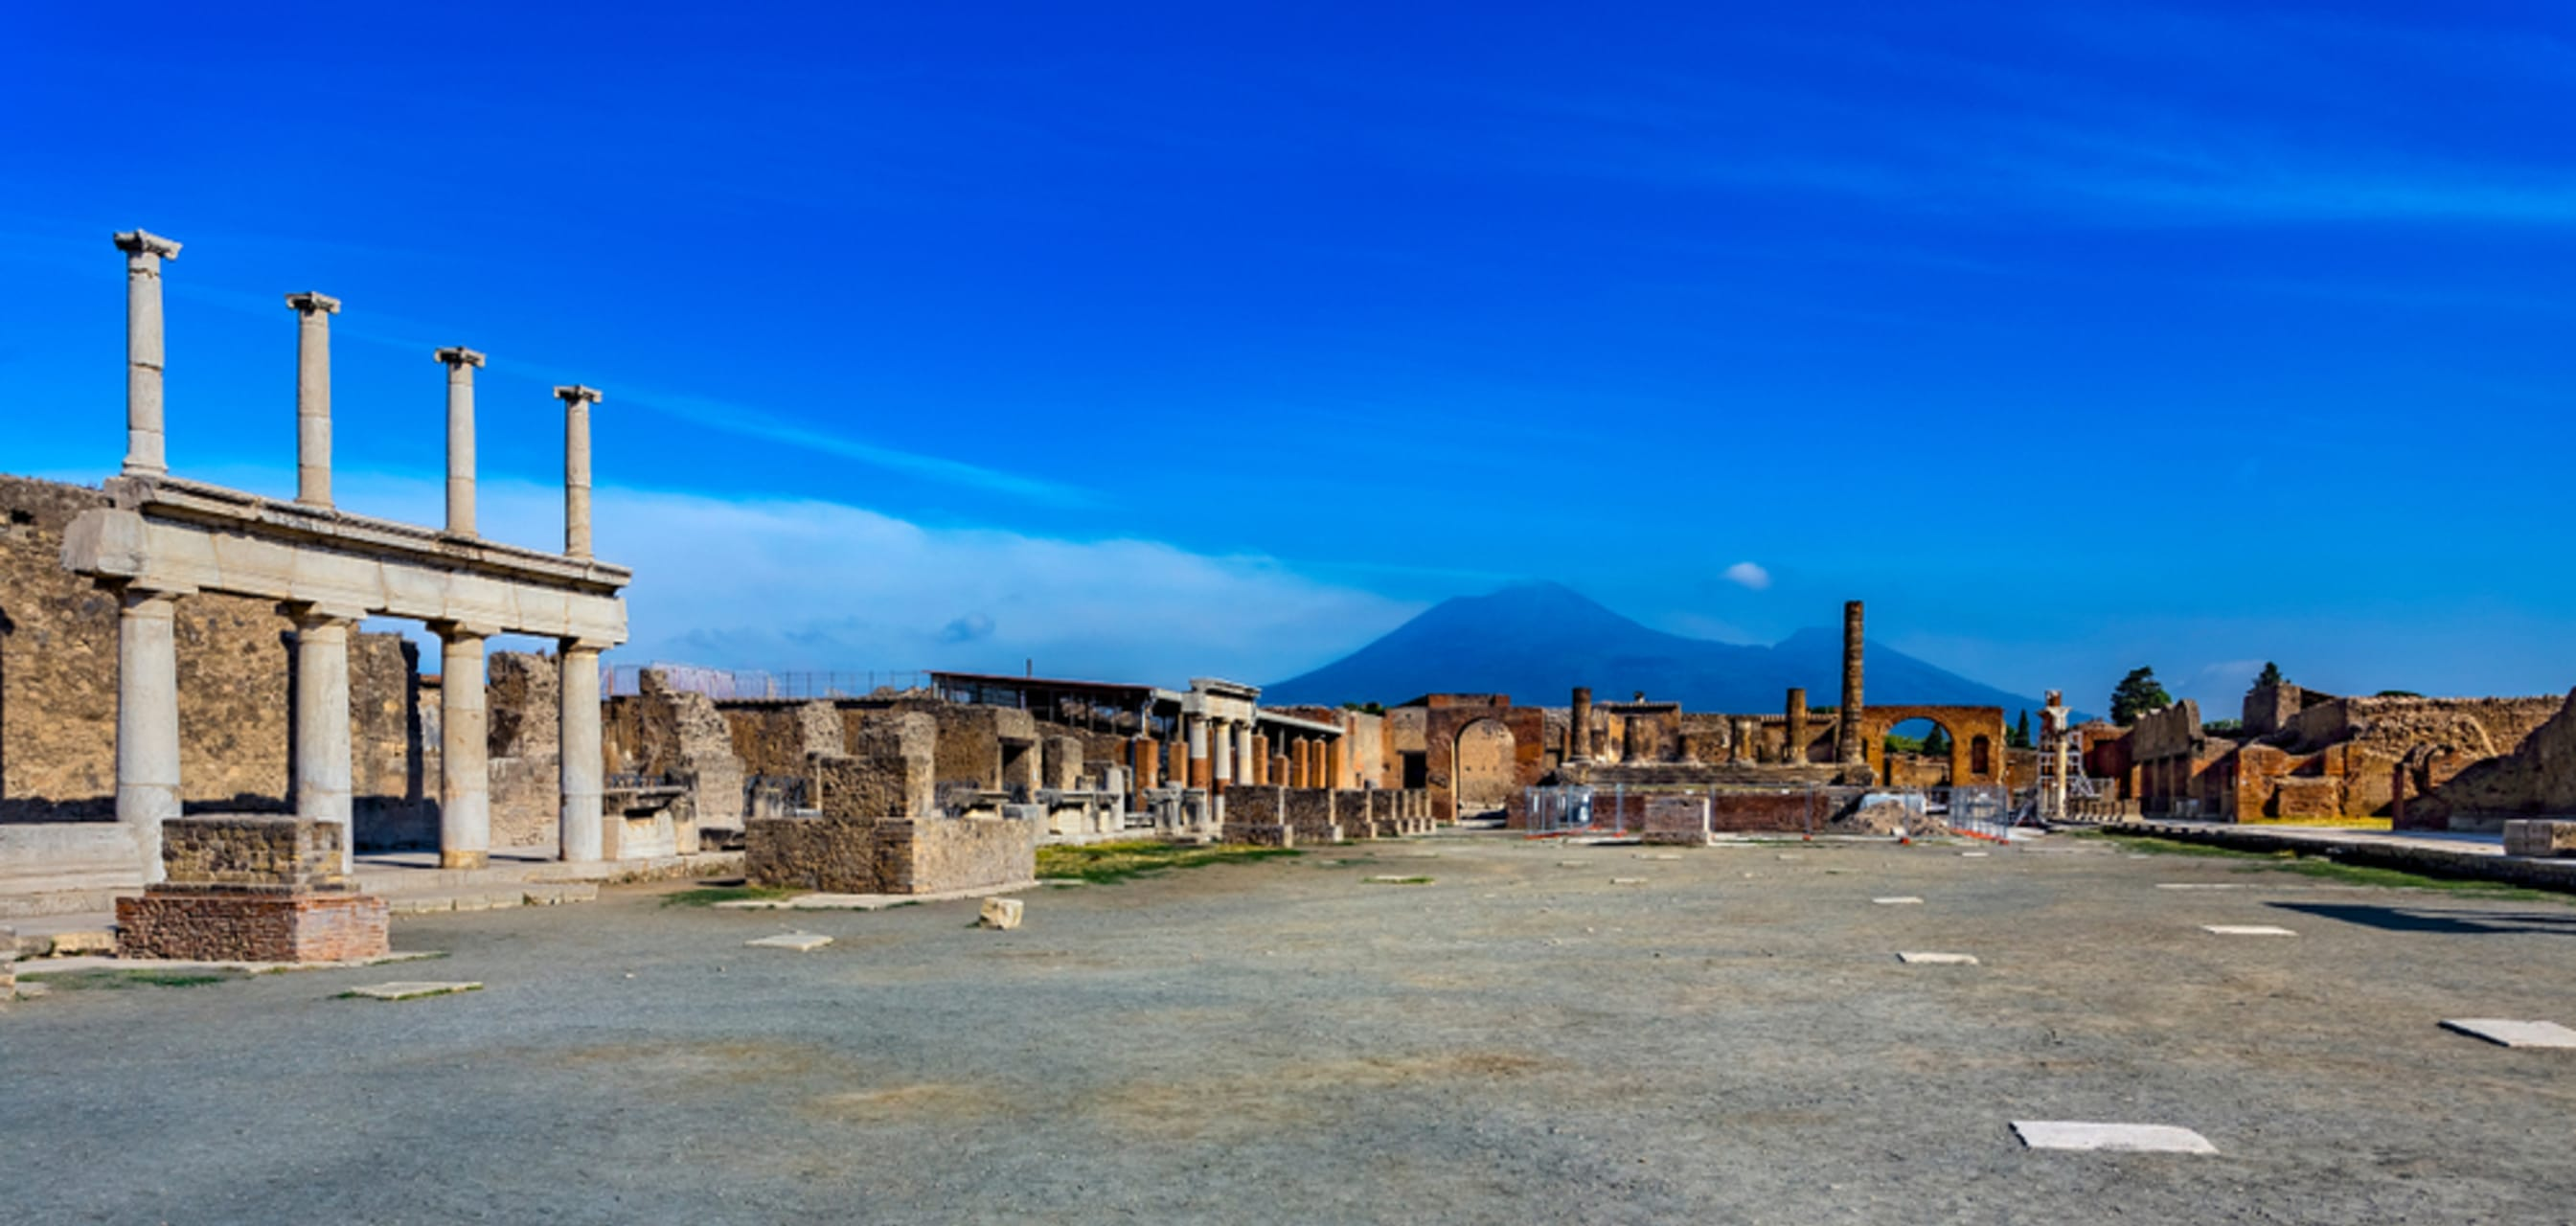 Pompeii and  Herculaneum - Pompeii Part 1: the City Walls and the Roman Forum